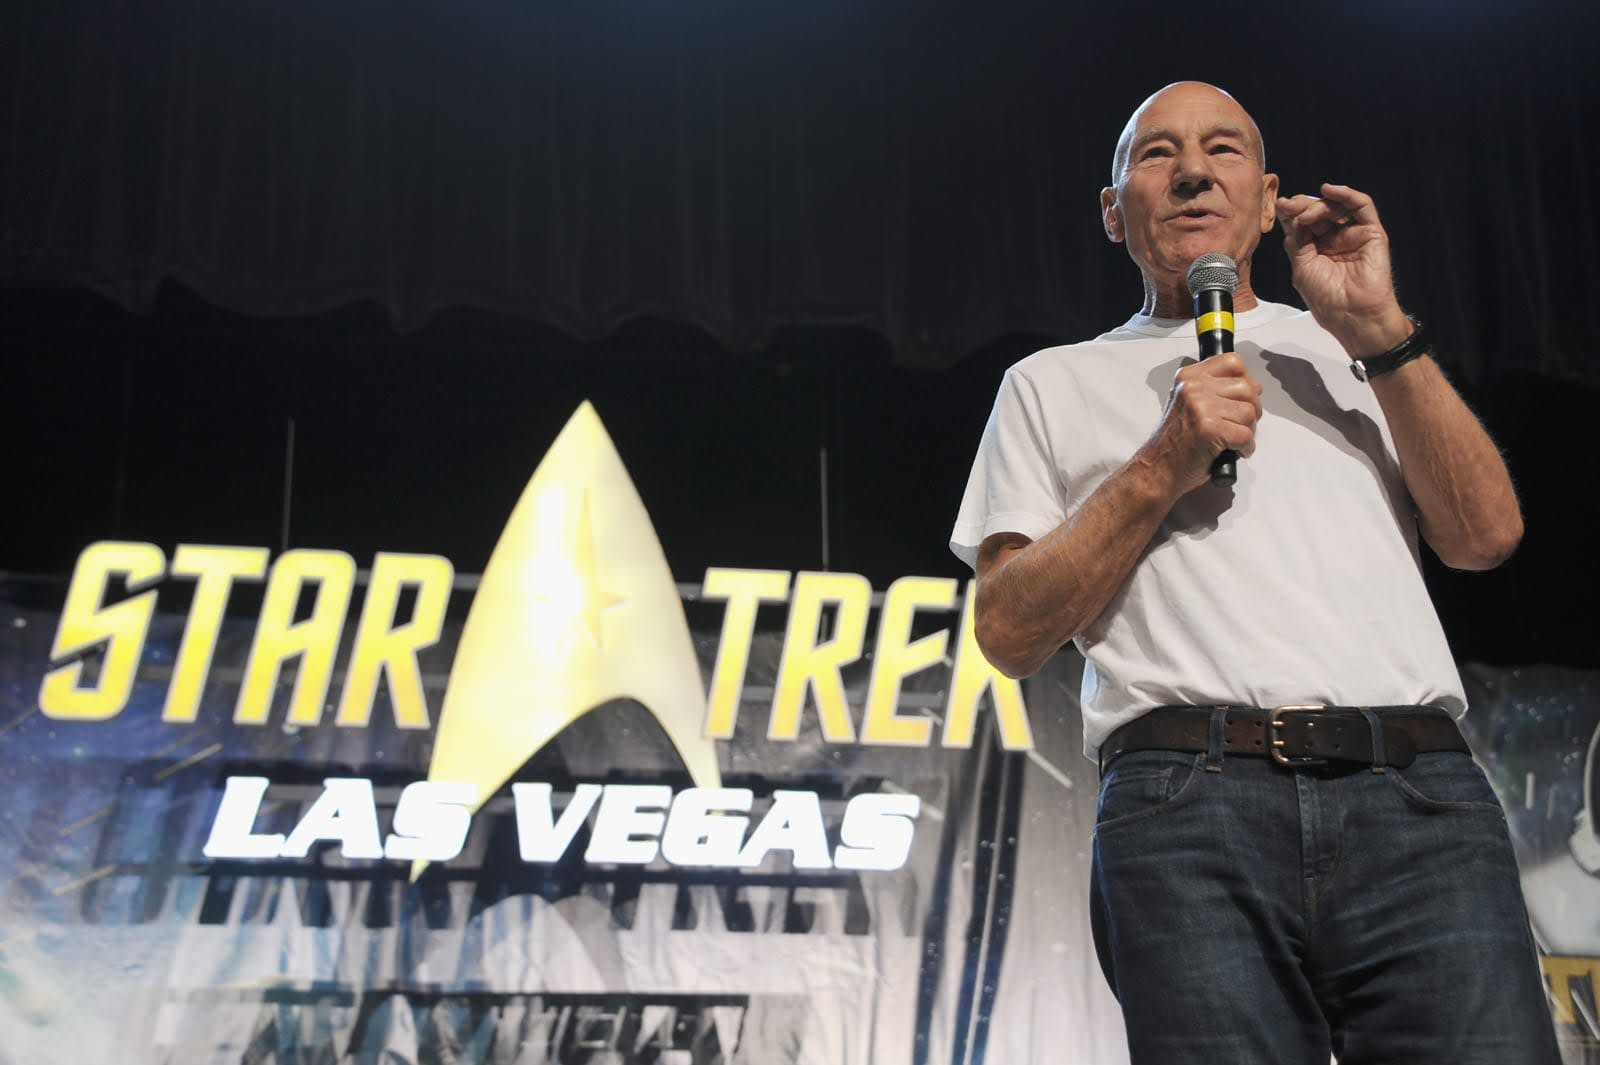 CBS' Picard series will loosely tie in with JJ Abrams' 'Star